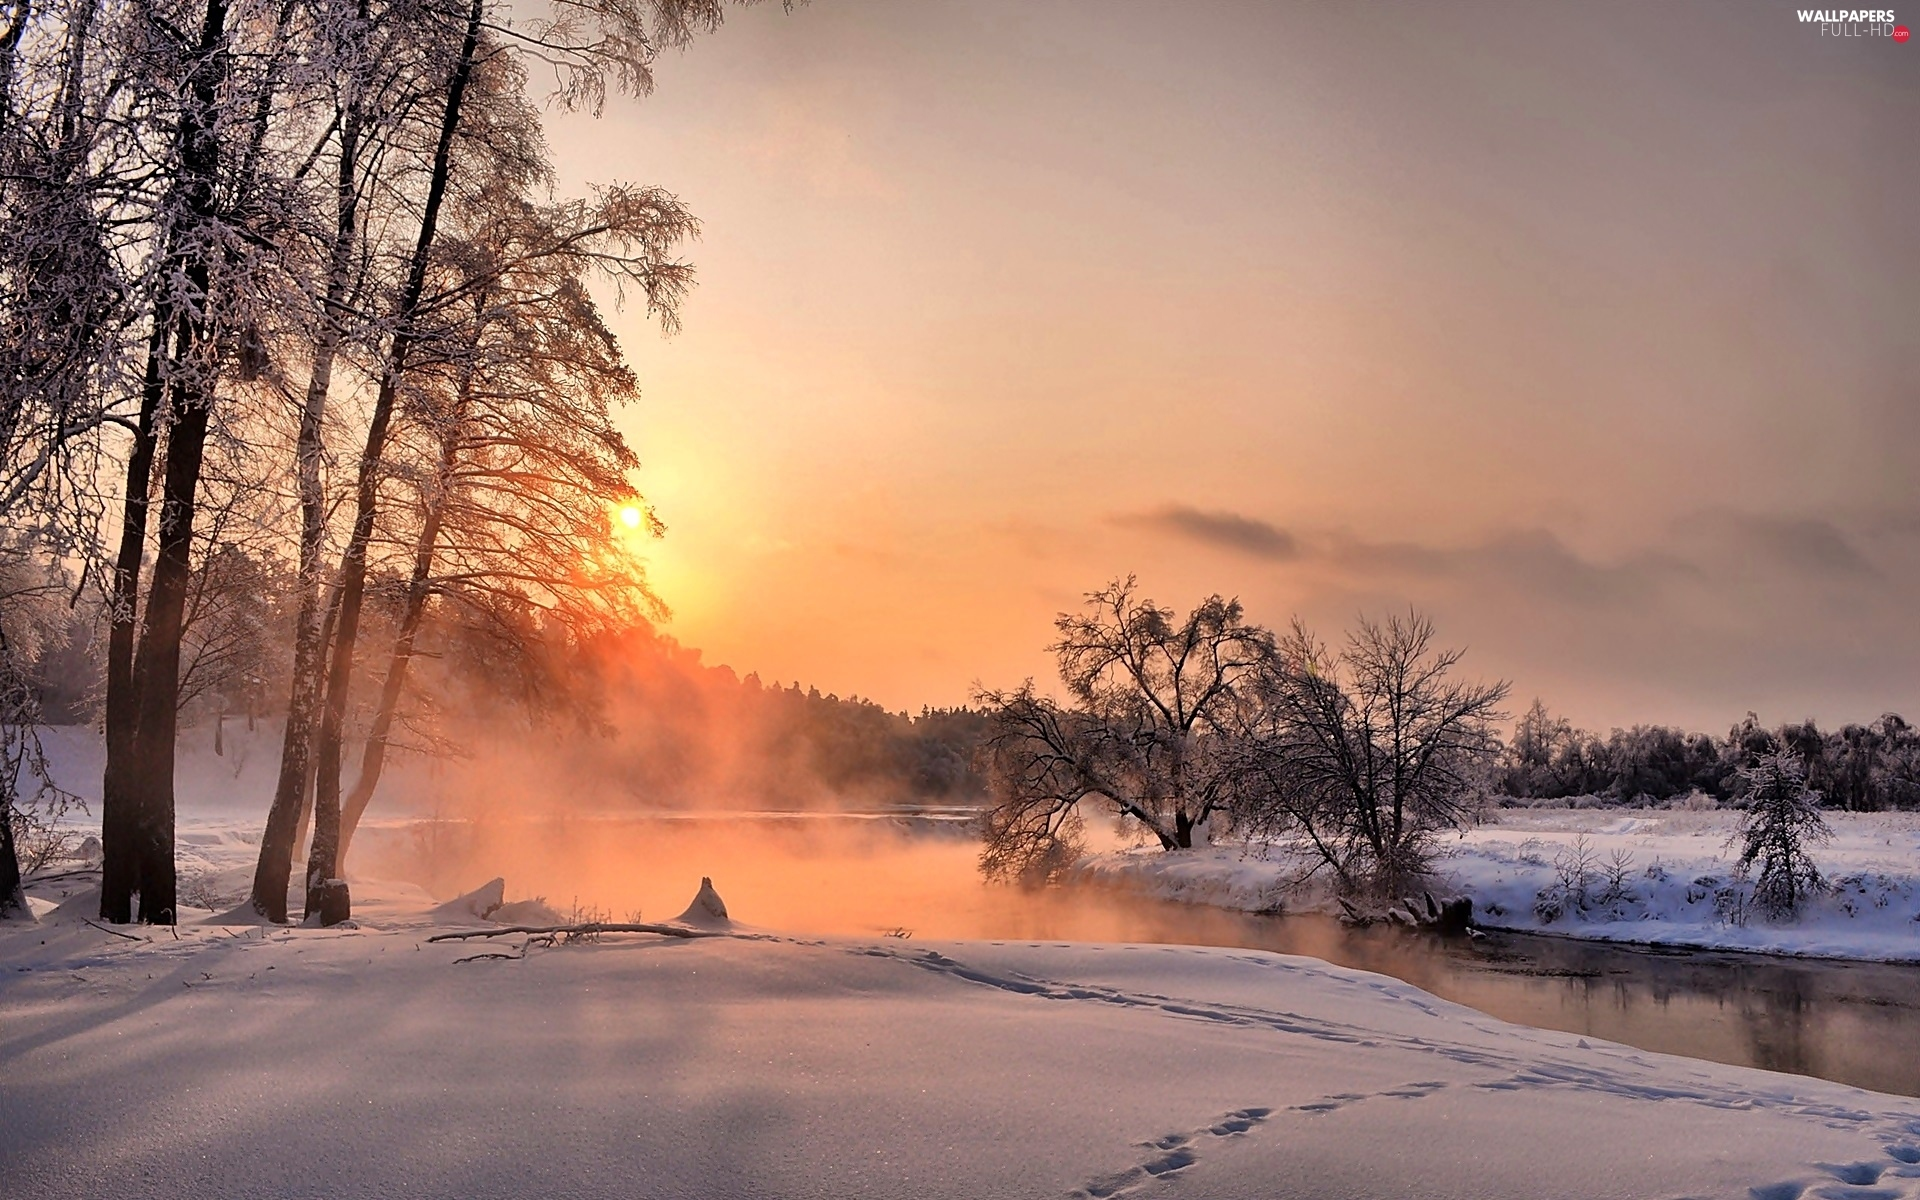 Fog, trees, River, winter, viewes, dawn, forest